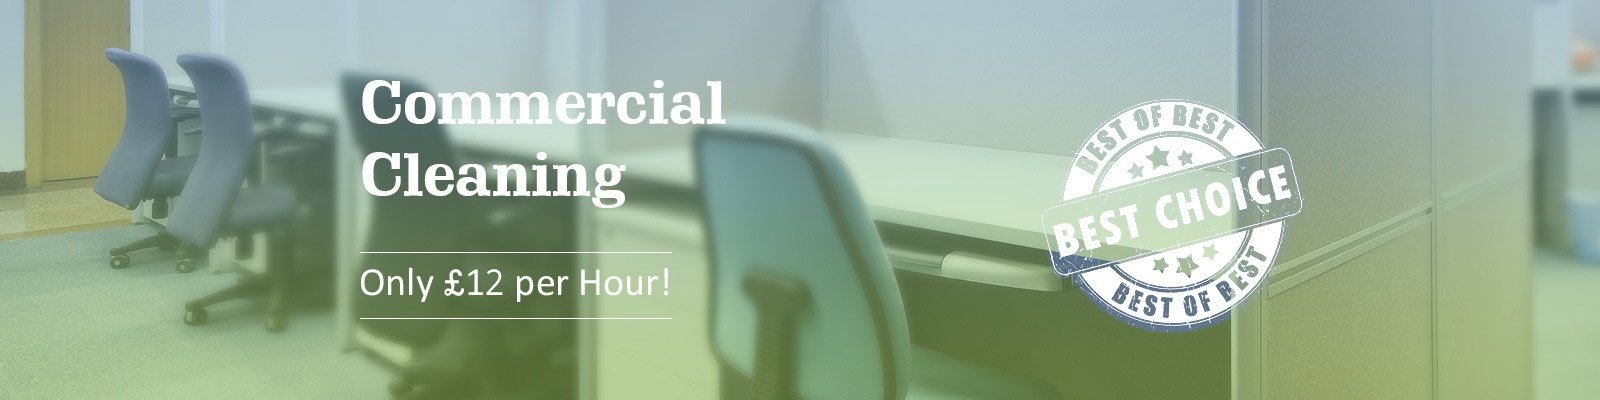 commercial-cleaning-london